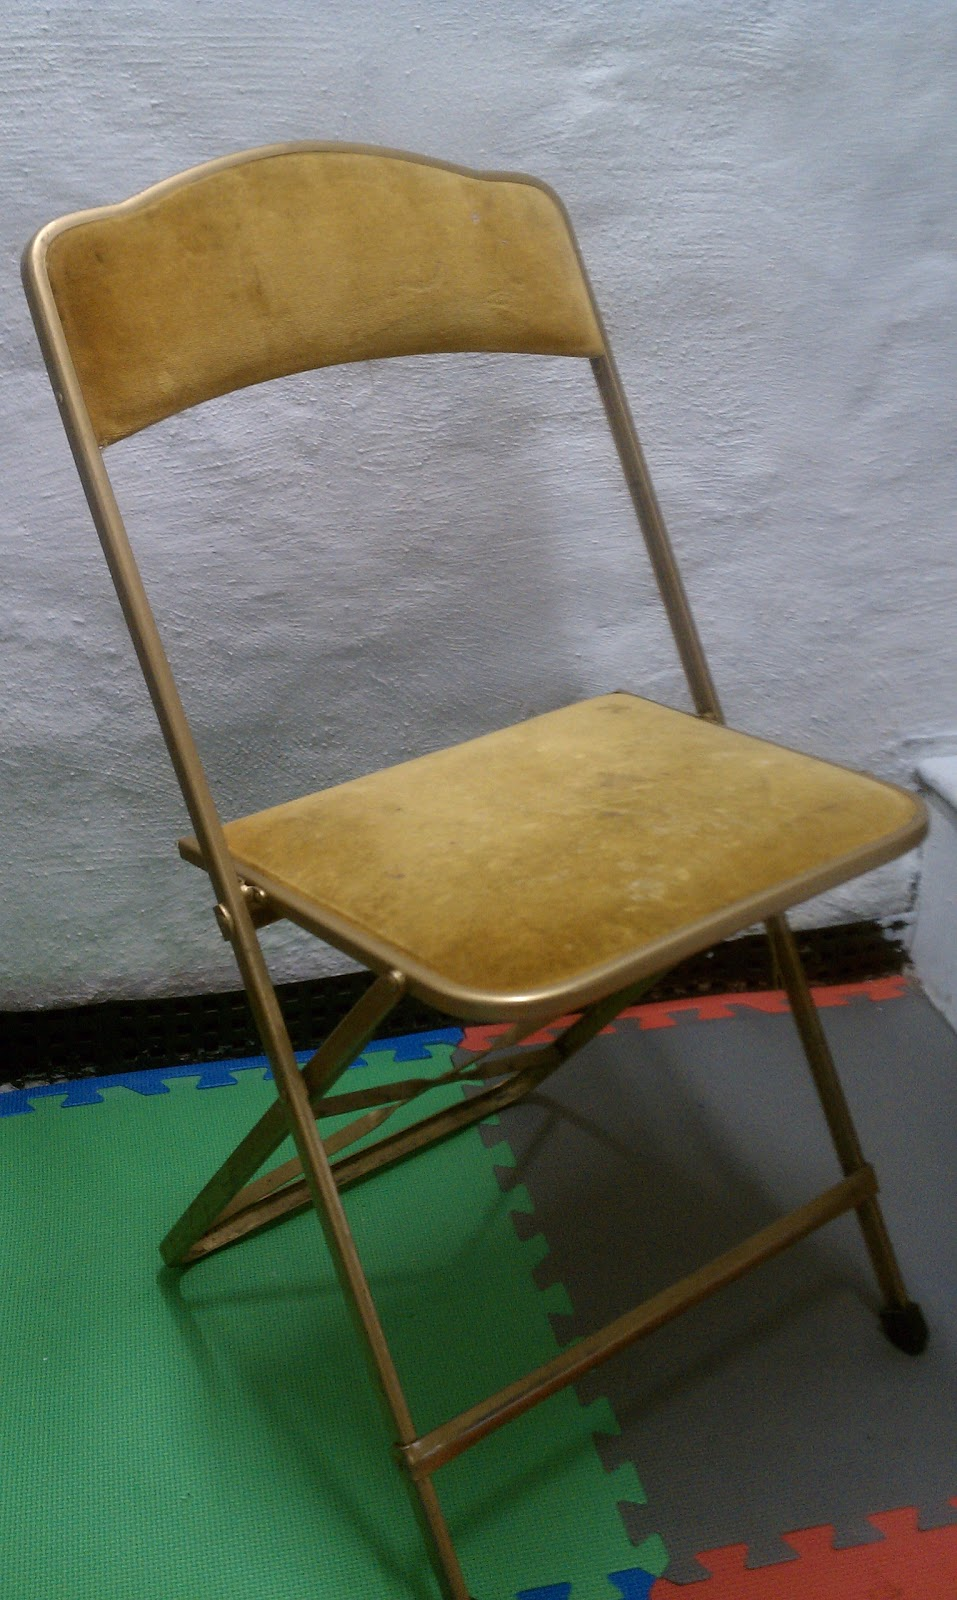 The Best Folding Chair In The Western World: A. Fritz U0026 Company